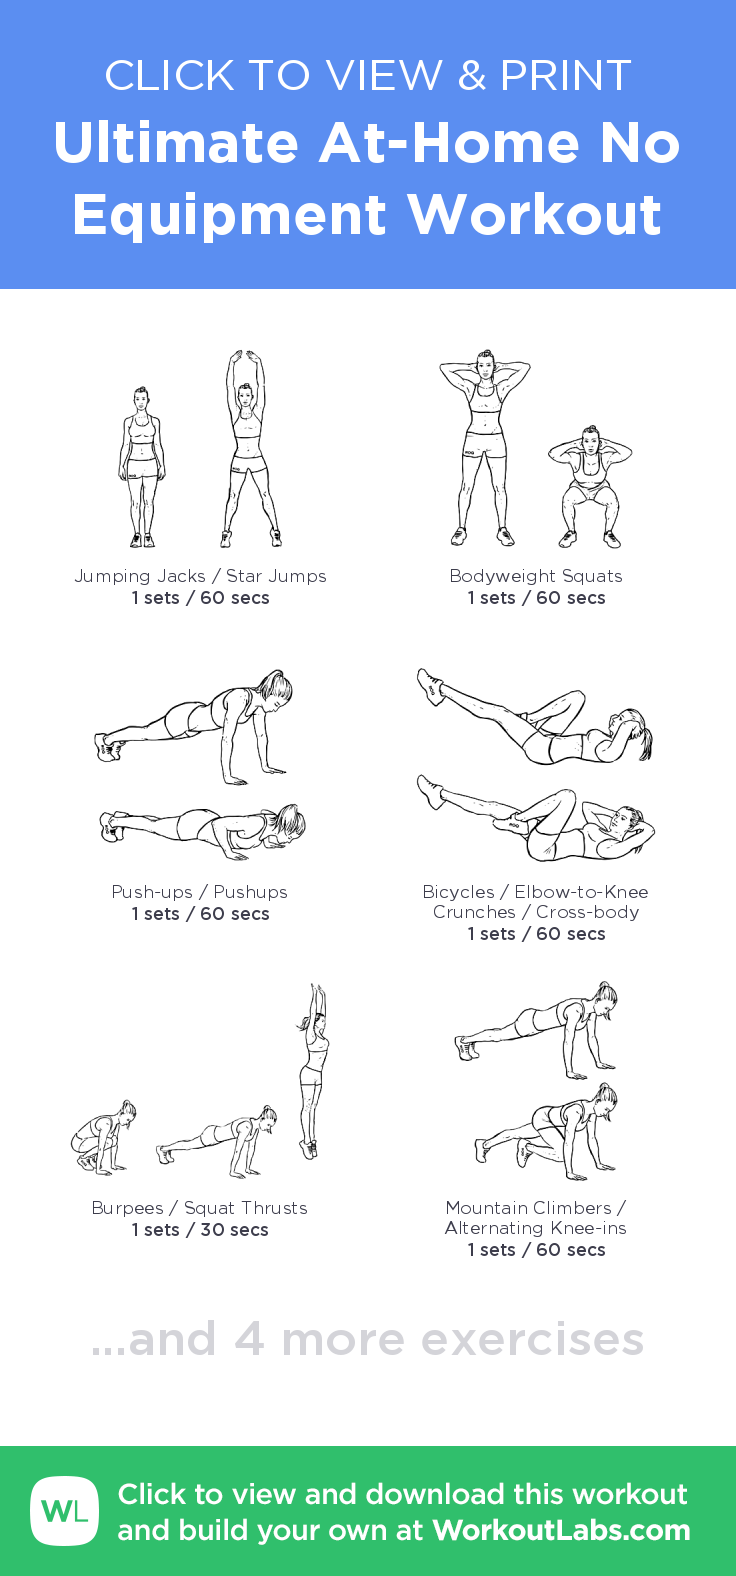 Ultimate At-Home No Equipment Workout – click to view and print this on modern villa design, 3d home design, ultimate home heating systems, cutting edge home design, advanced home design, ultimate dream home,